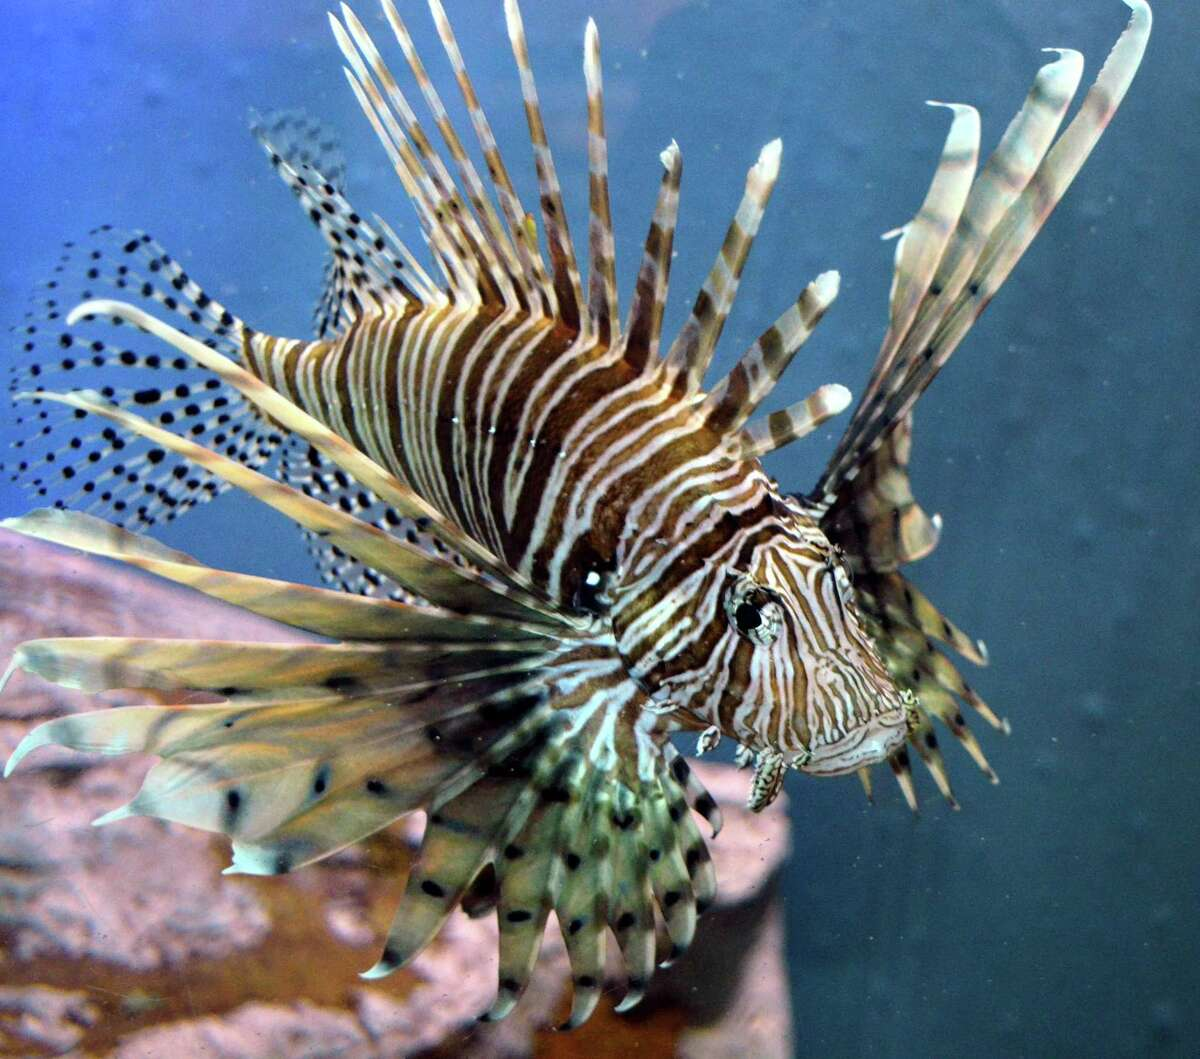 One of the lionfish on display at the Texas State Aquarium in Corpus Christi in February 2016. At the time, the aquarium was expanding its exhibit of the venomous invader whose numerous spines can cause painful stings.